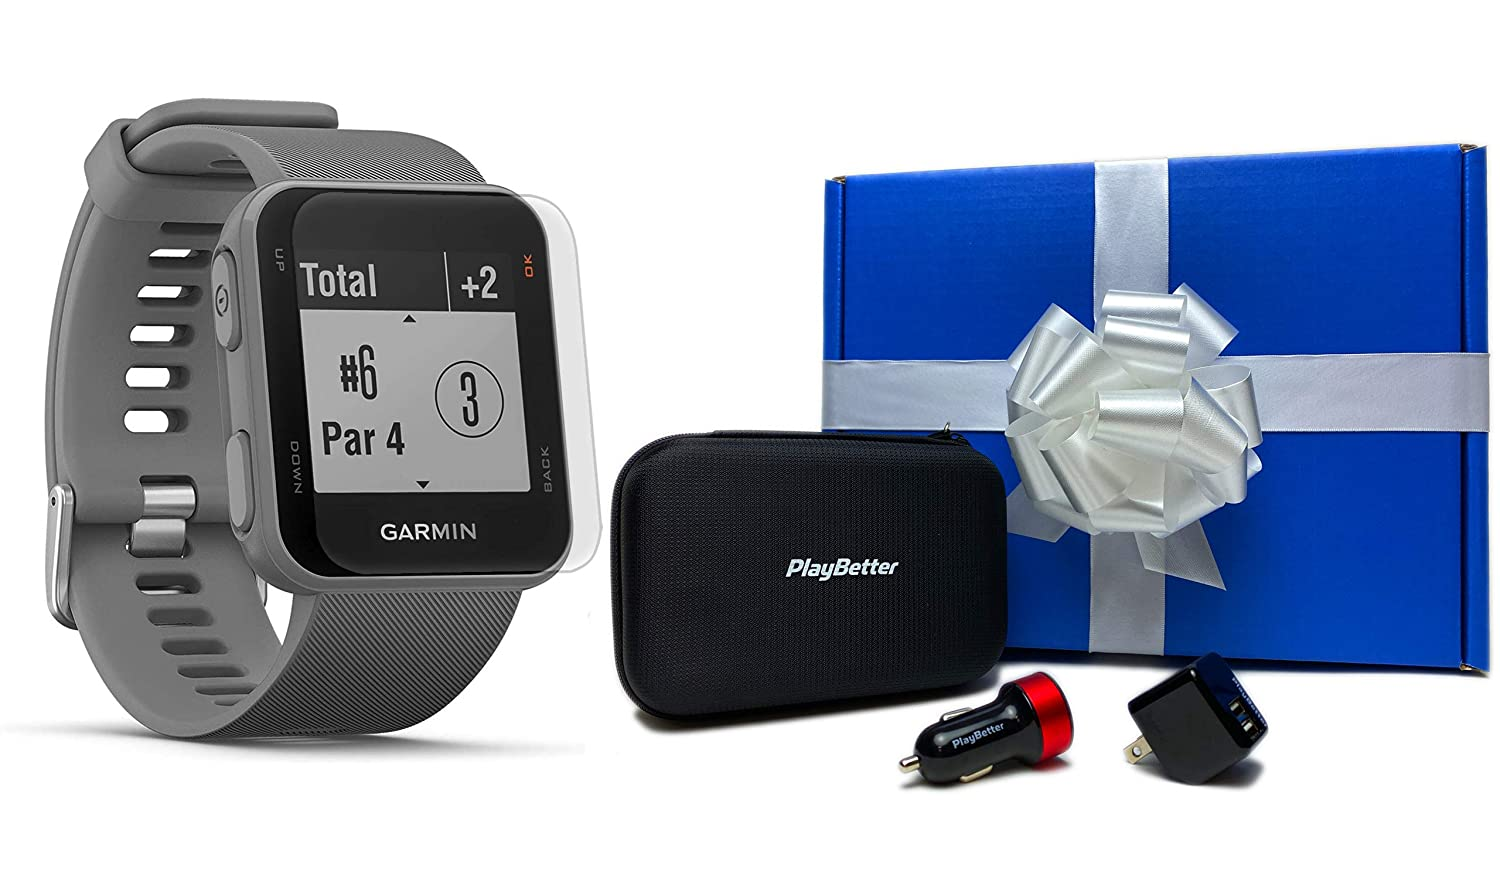 Garmin Approach S10 Powder Gray Beat Yesterday Gift Box Bundle HD Screen Protectors, PlayBetter USB Car Wall Adapters Protective Hard Case Golf GPS Watch 40,000 Worldwide Courses